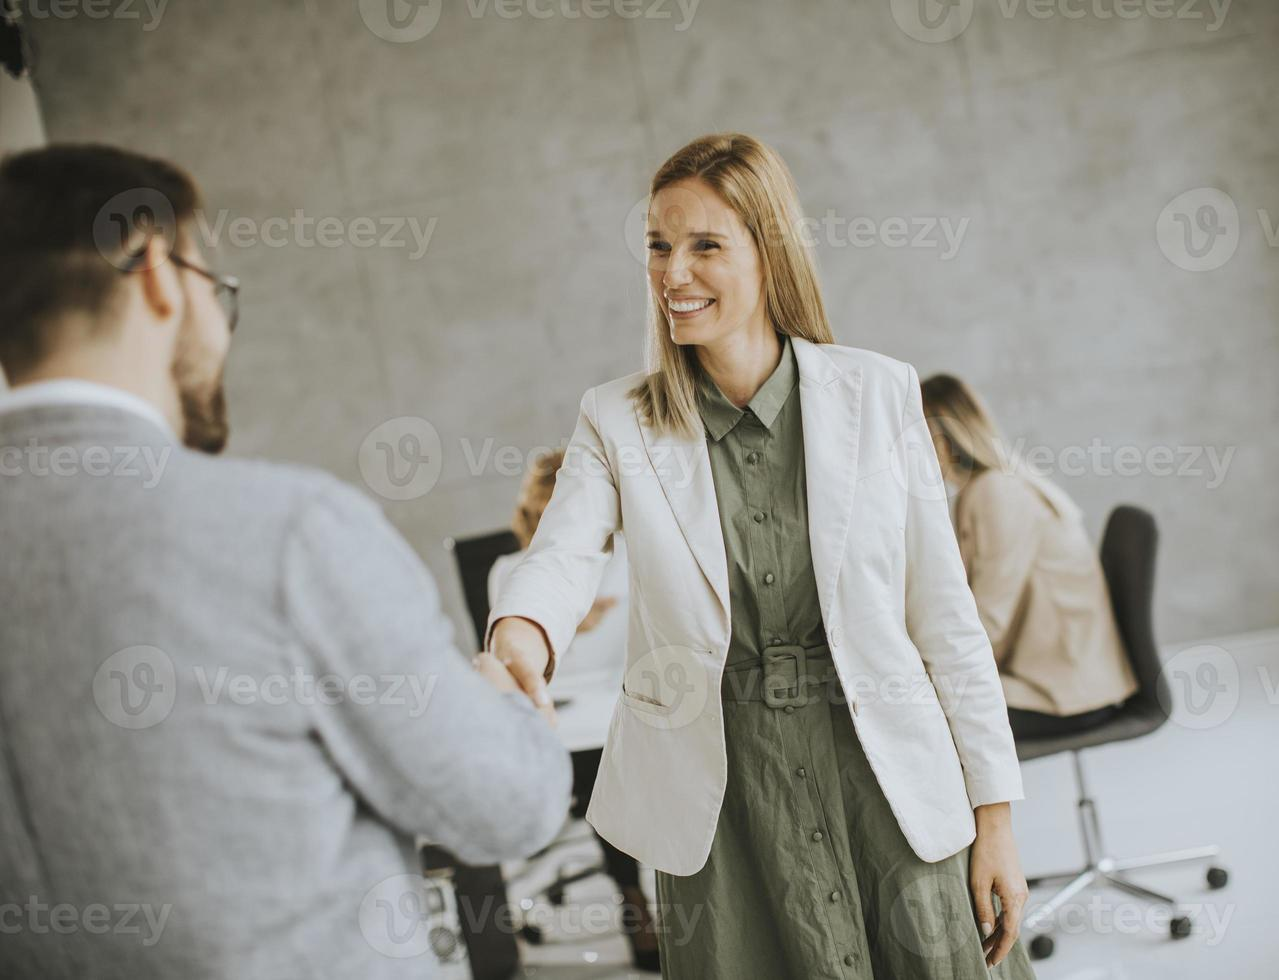 Two business professionals shaking hands in an office photo